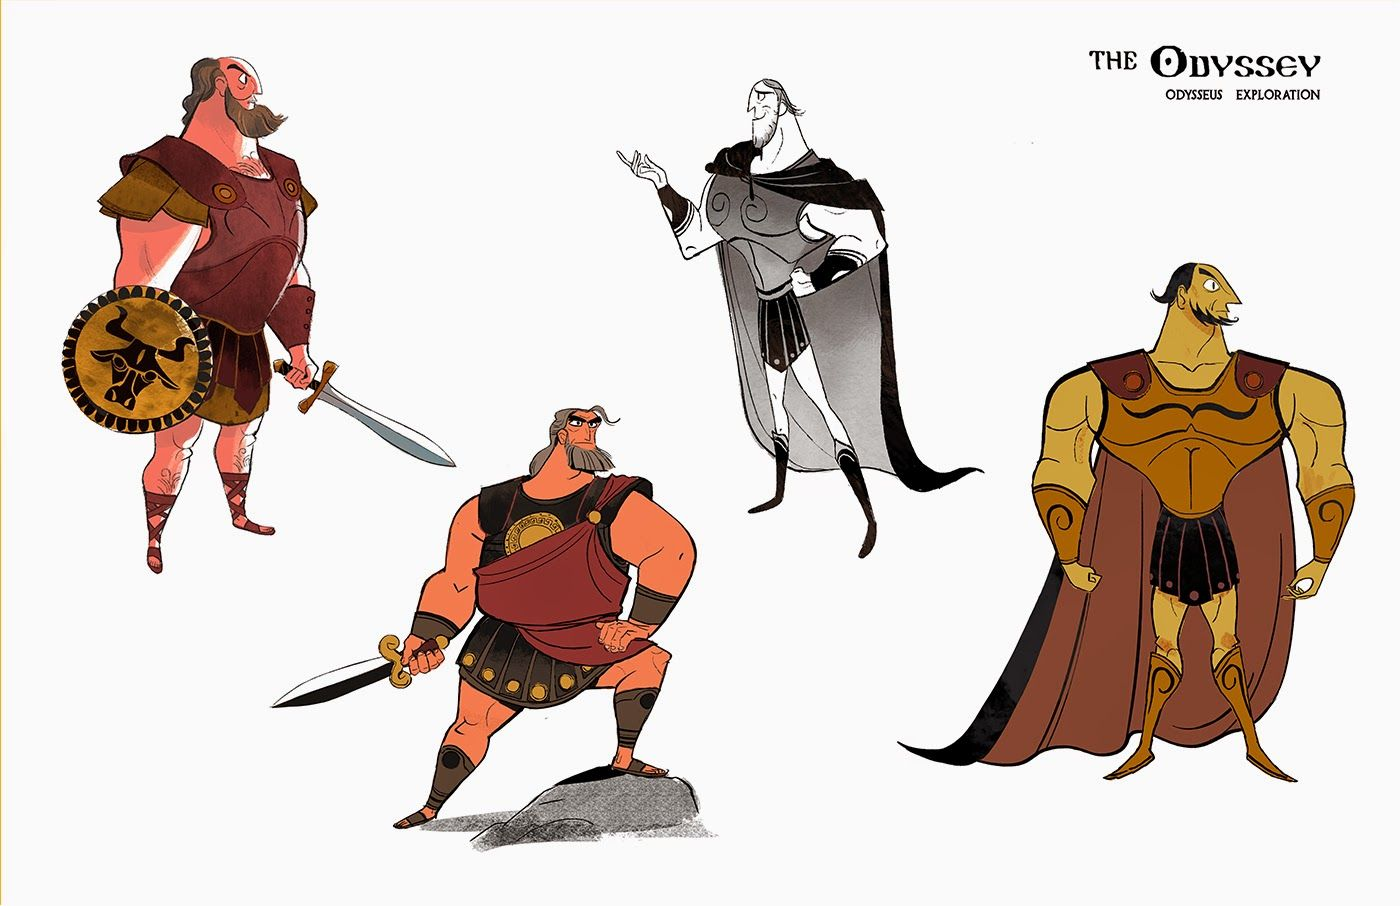 Nowhere Land: 2015 Portfolio ★ || CHARACTER DESIGN REFERENCES (www.facebook.com/CharacterDesignReferences & pinterest.com/characterdesigh) • Love Character Design? Join the Character Design Challenge (link→ www.facebook.com/groups/CharacterDesignChallenge) Share your unique vision of a theme every month, promote your art and make new friends in a community of over 20.000 artists! || ★